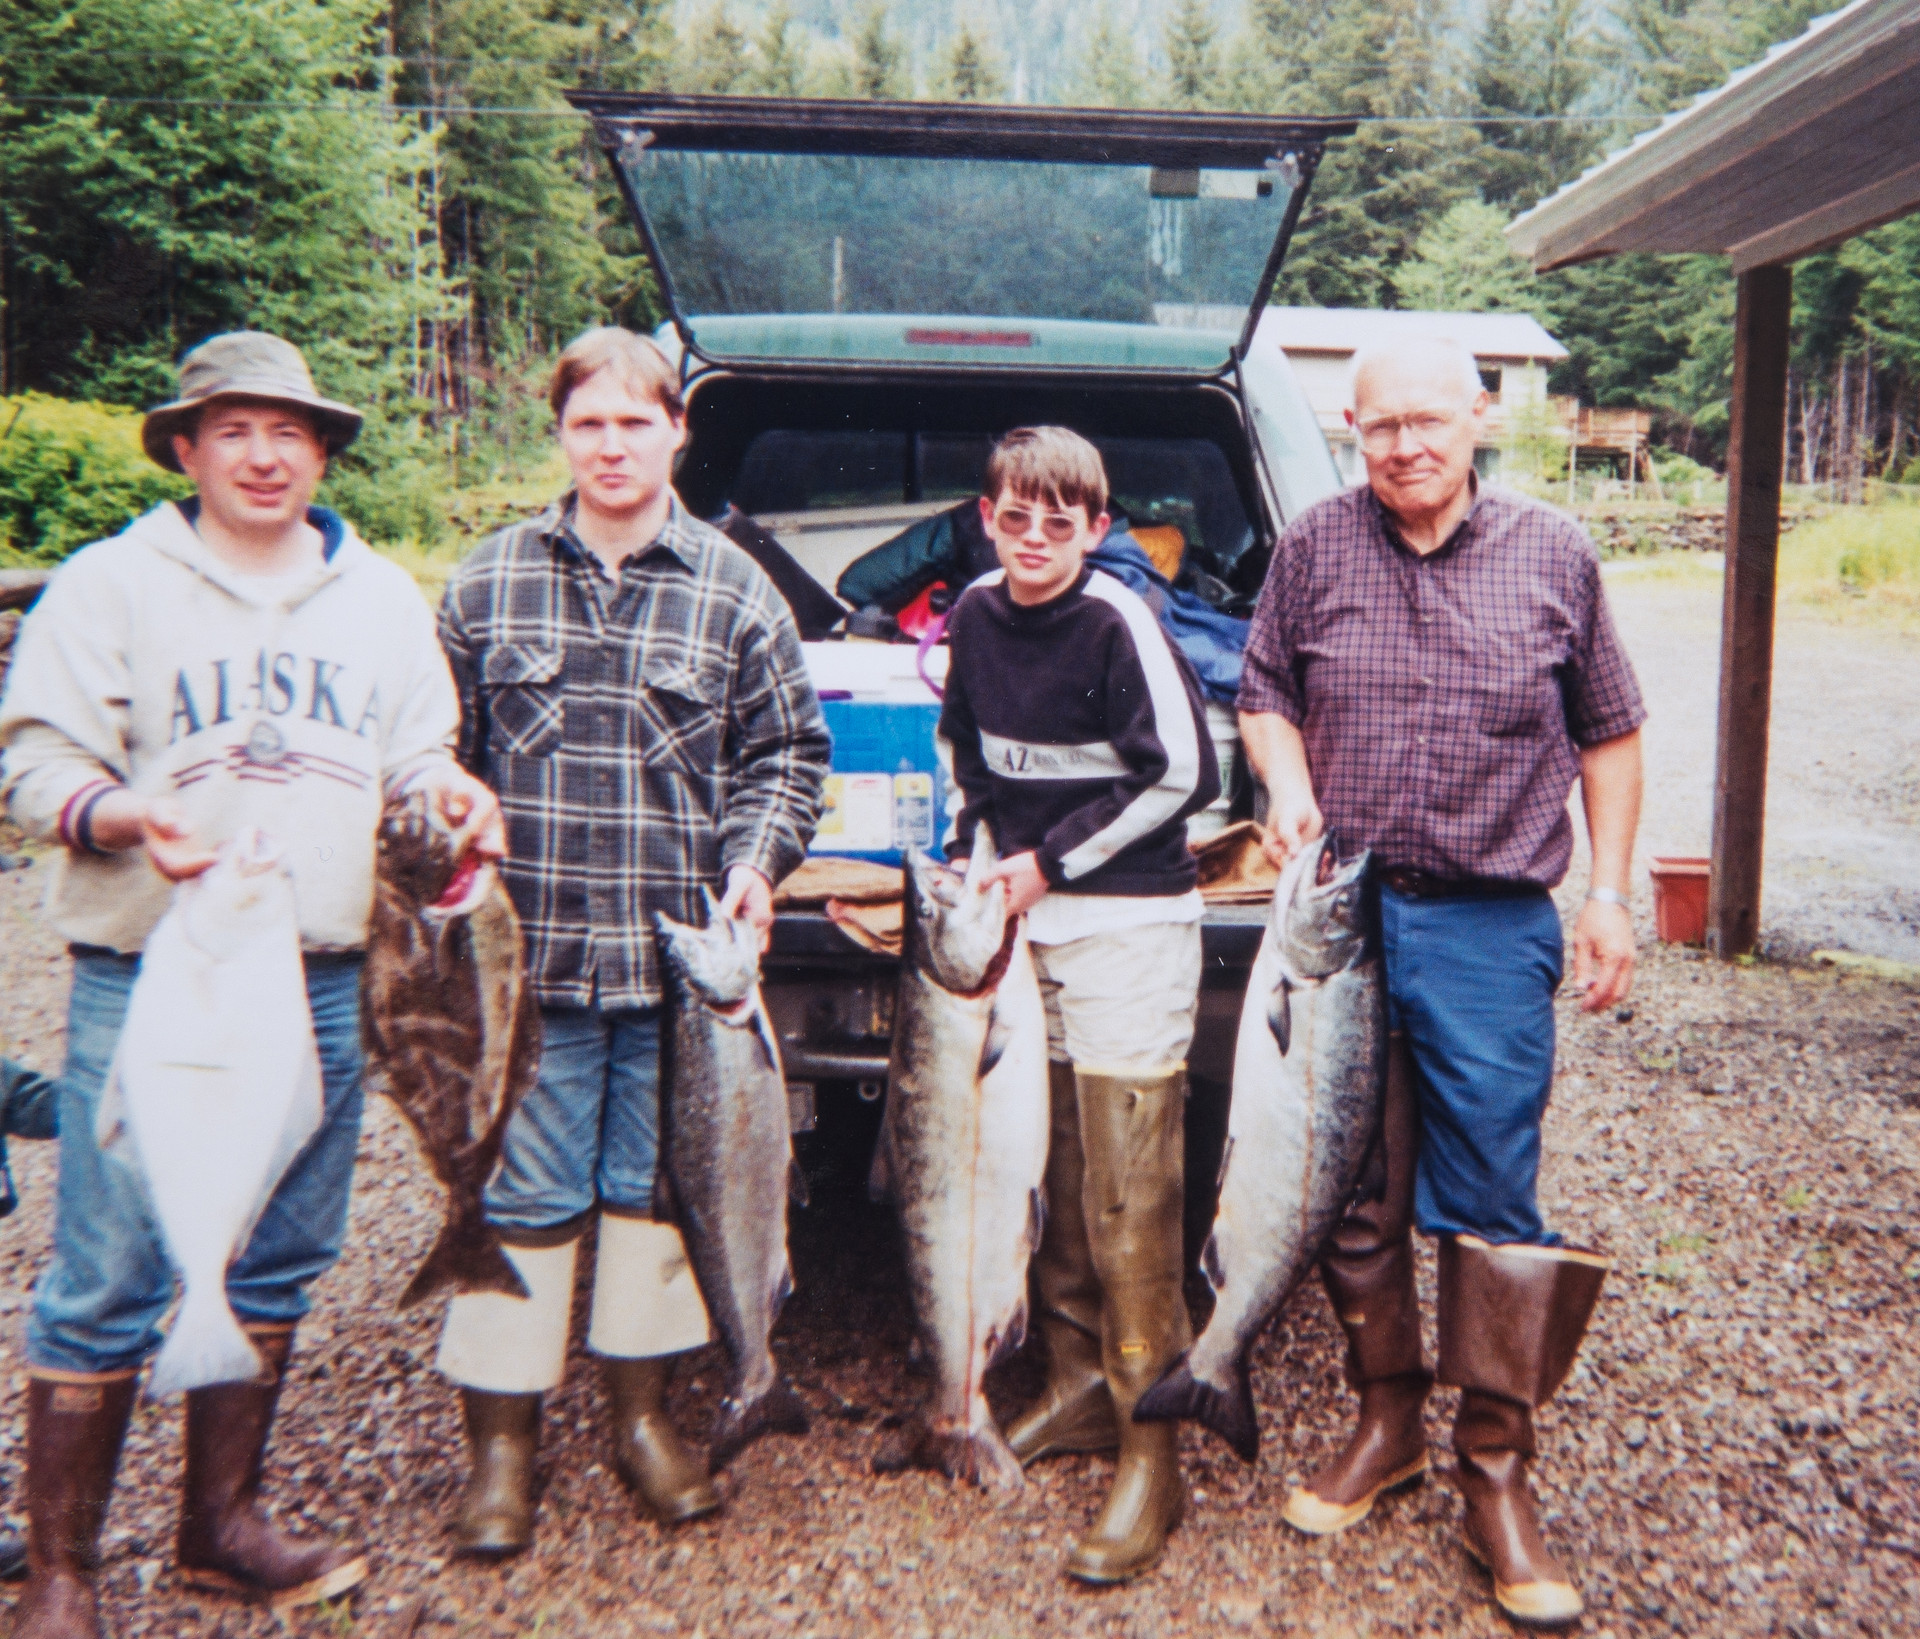 Kevin Castle with Elgin, Everett, Kenneth Cook after Fishing for King Salmon